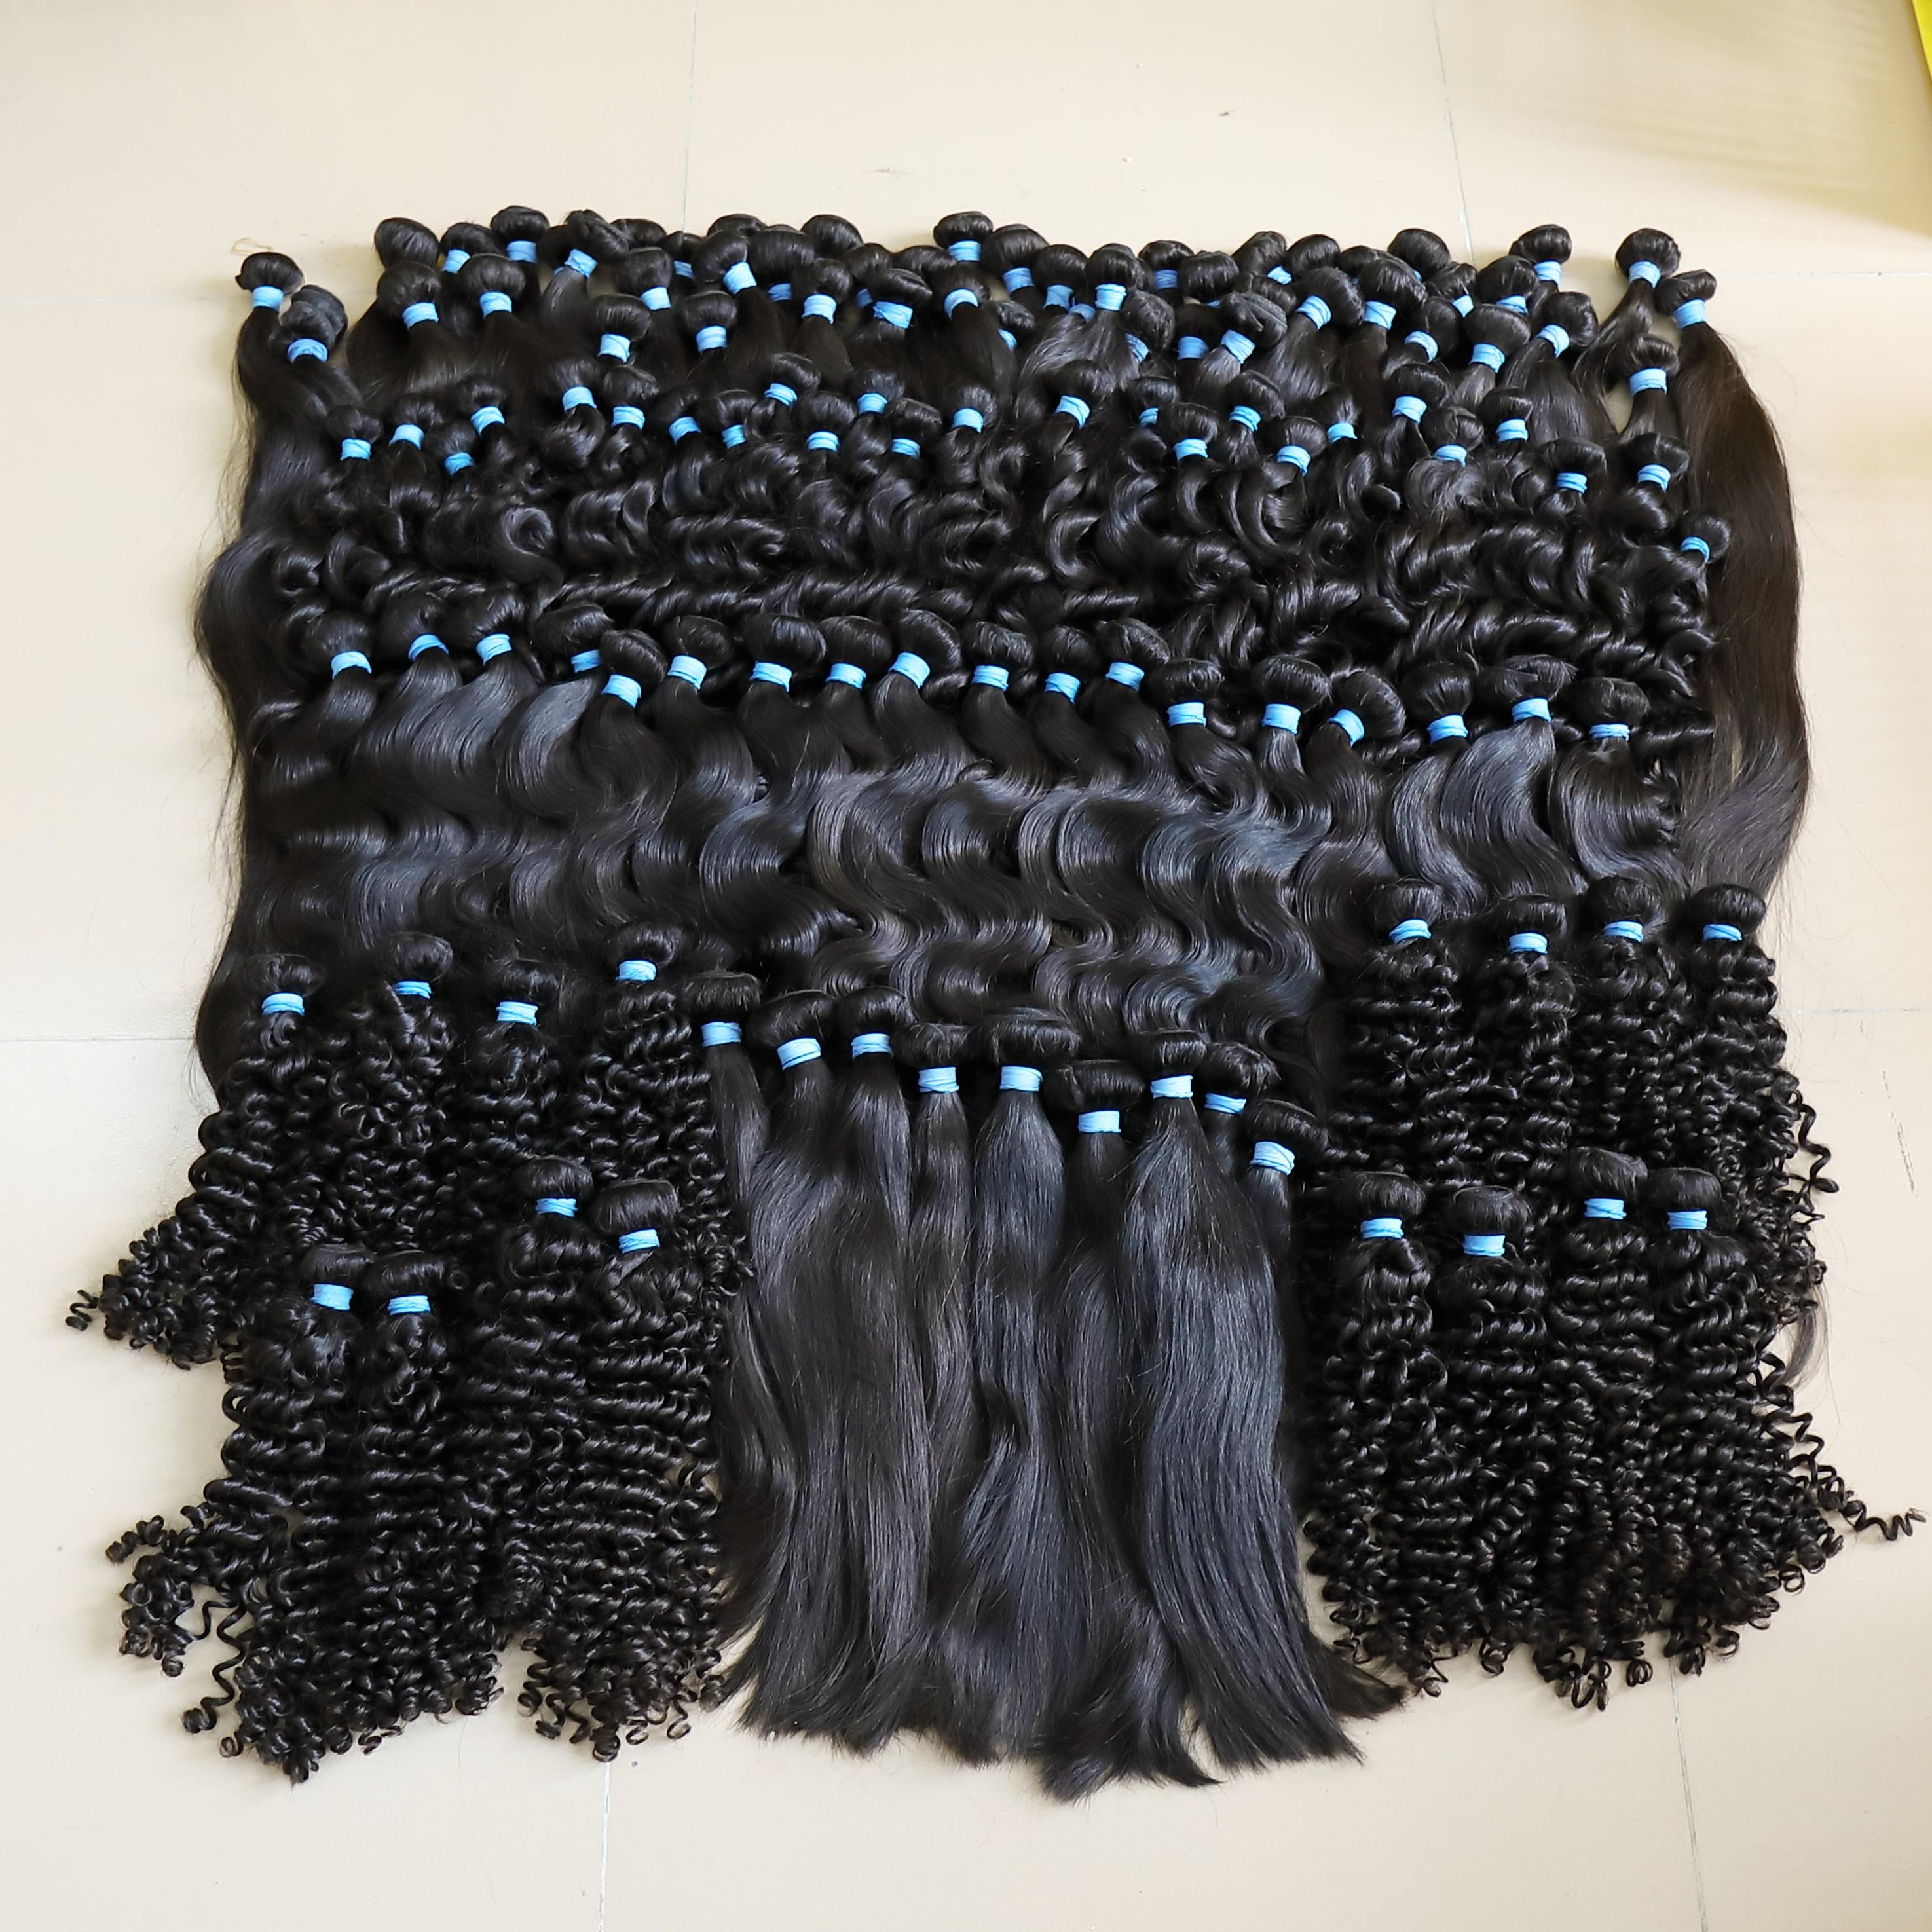 KBL mink hair replacement virgin price per kg hair,27 piece human hair weave high quality hair prosthesis,your own brand hair